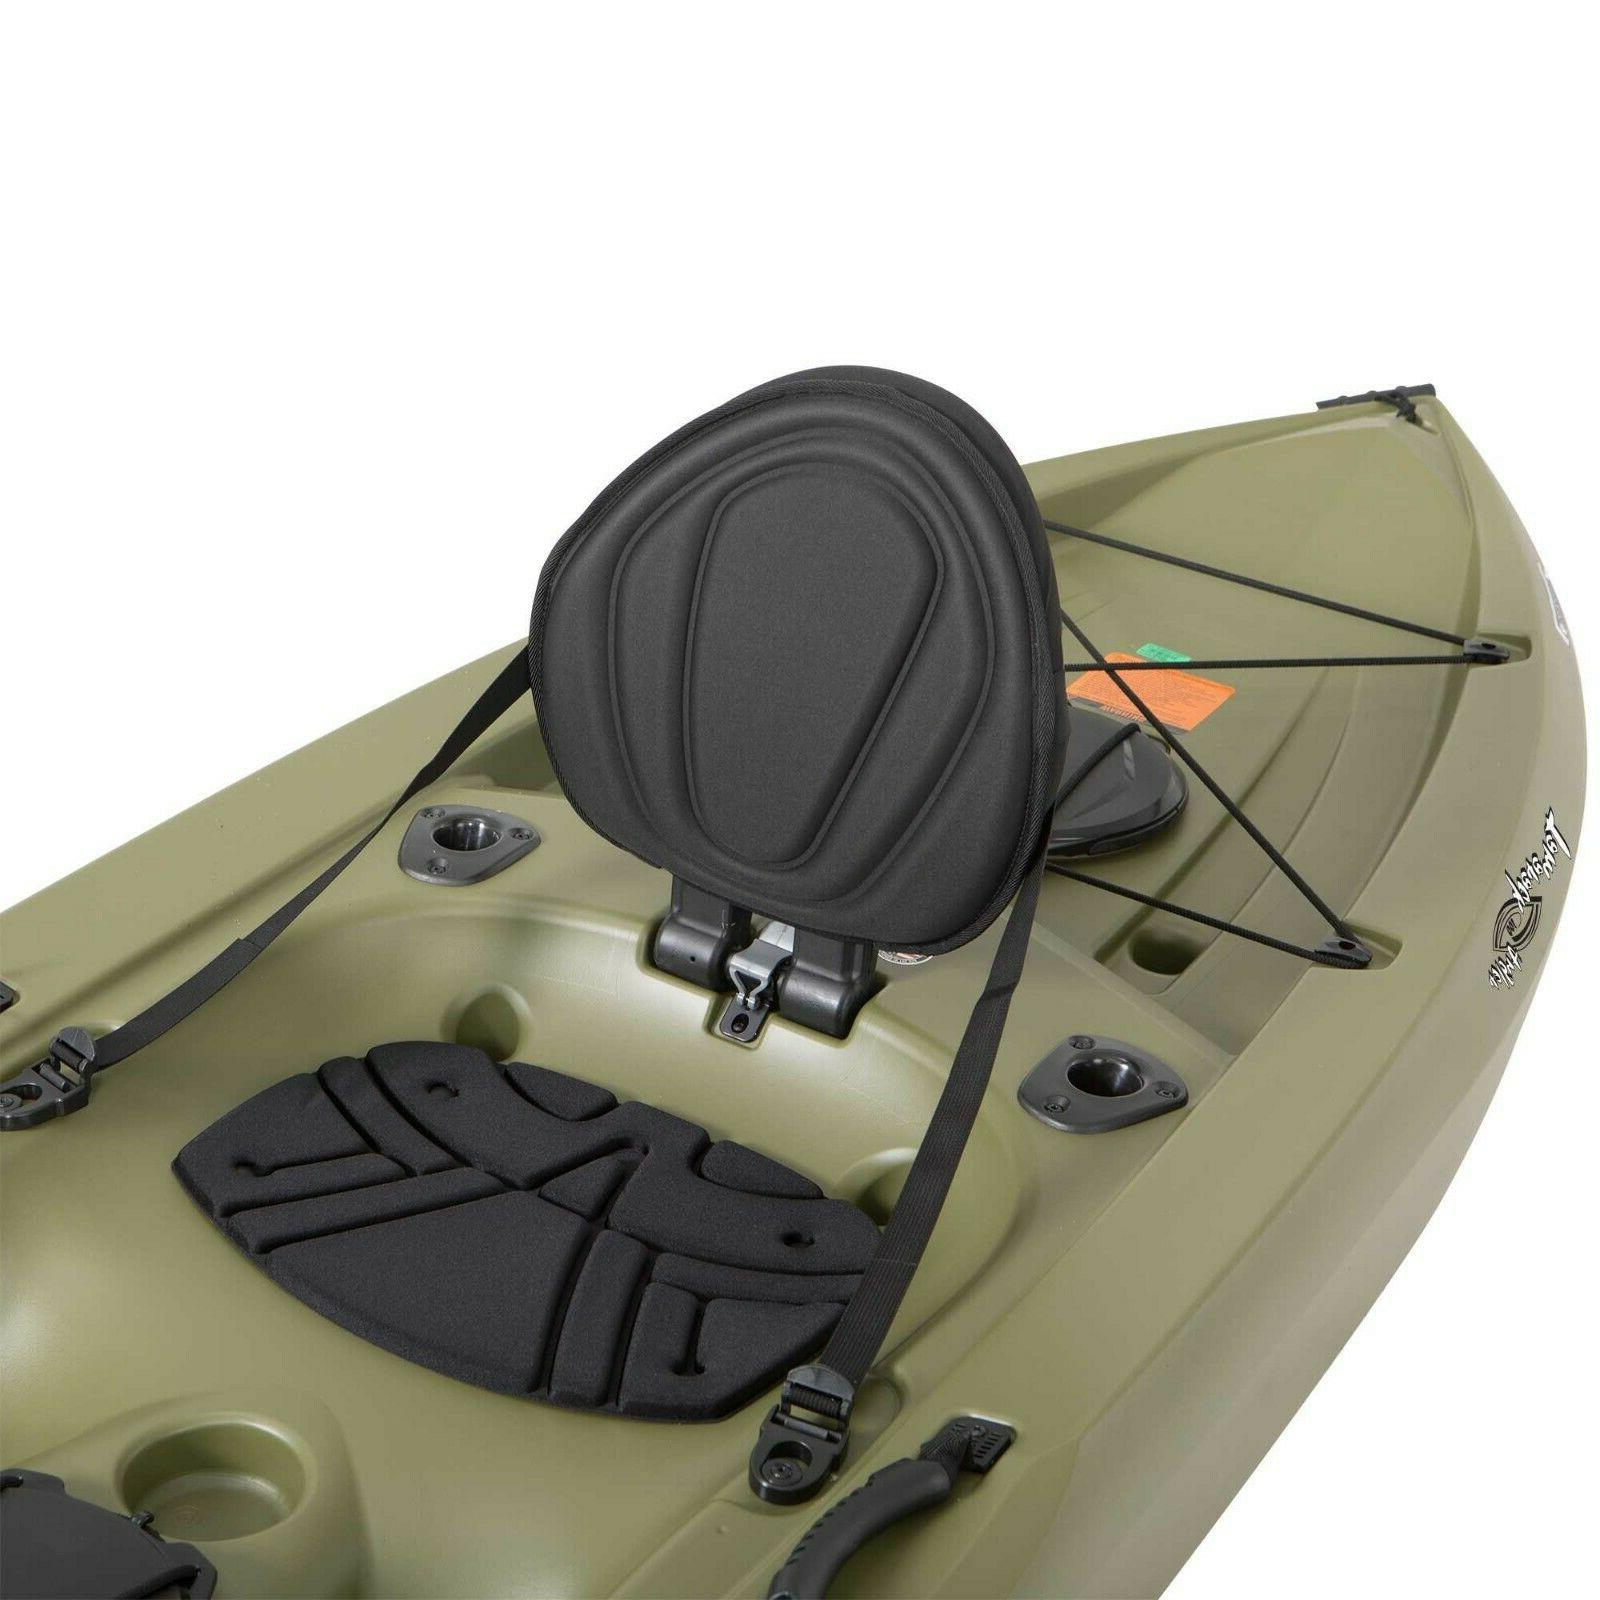 Lifetime Sit Top Kayak versatile